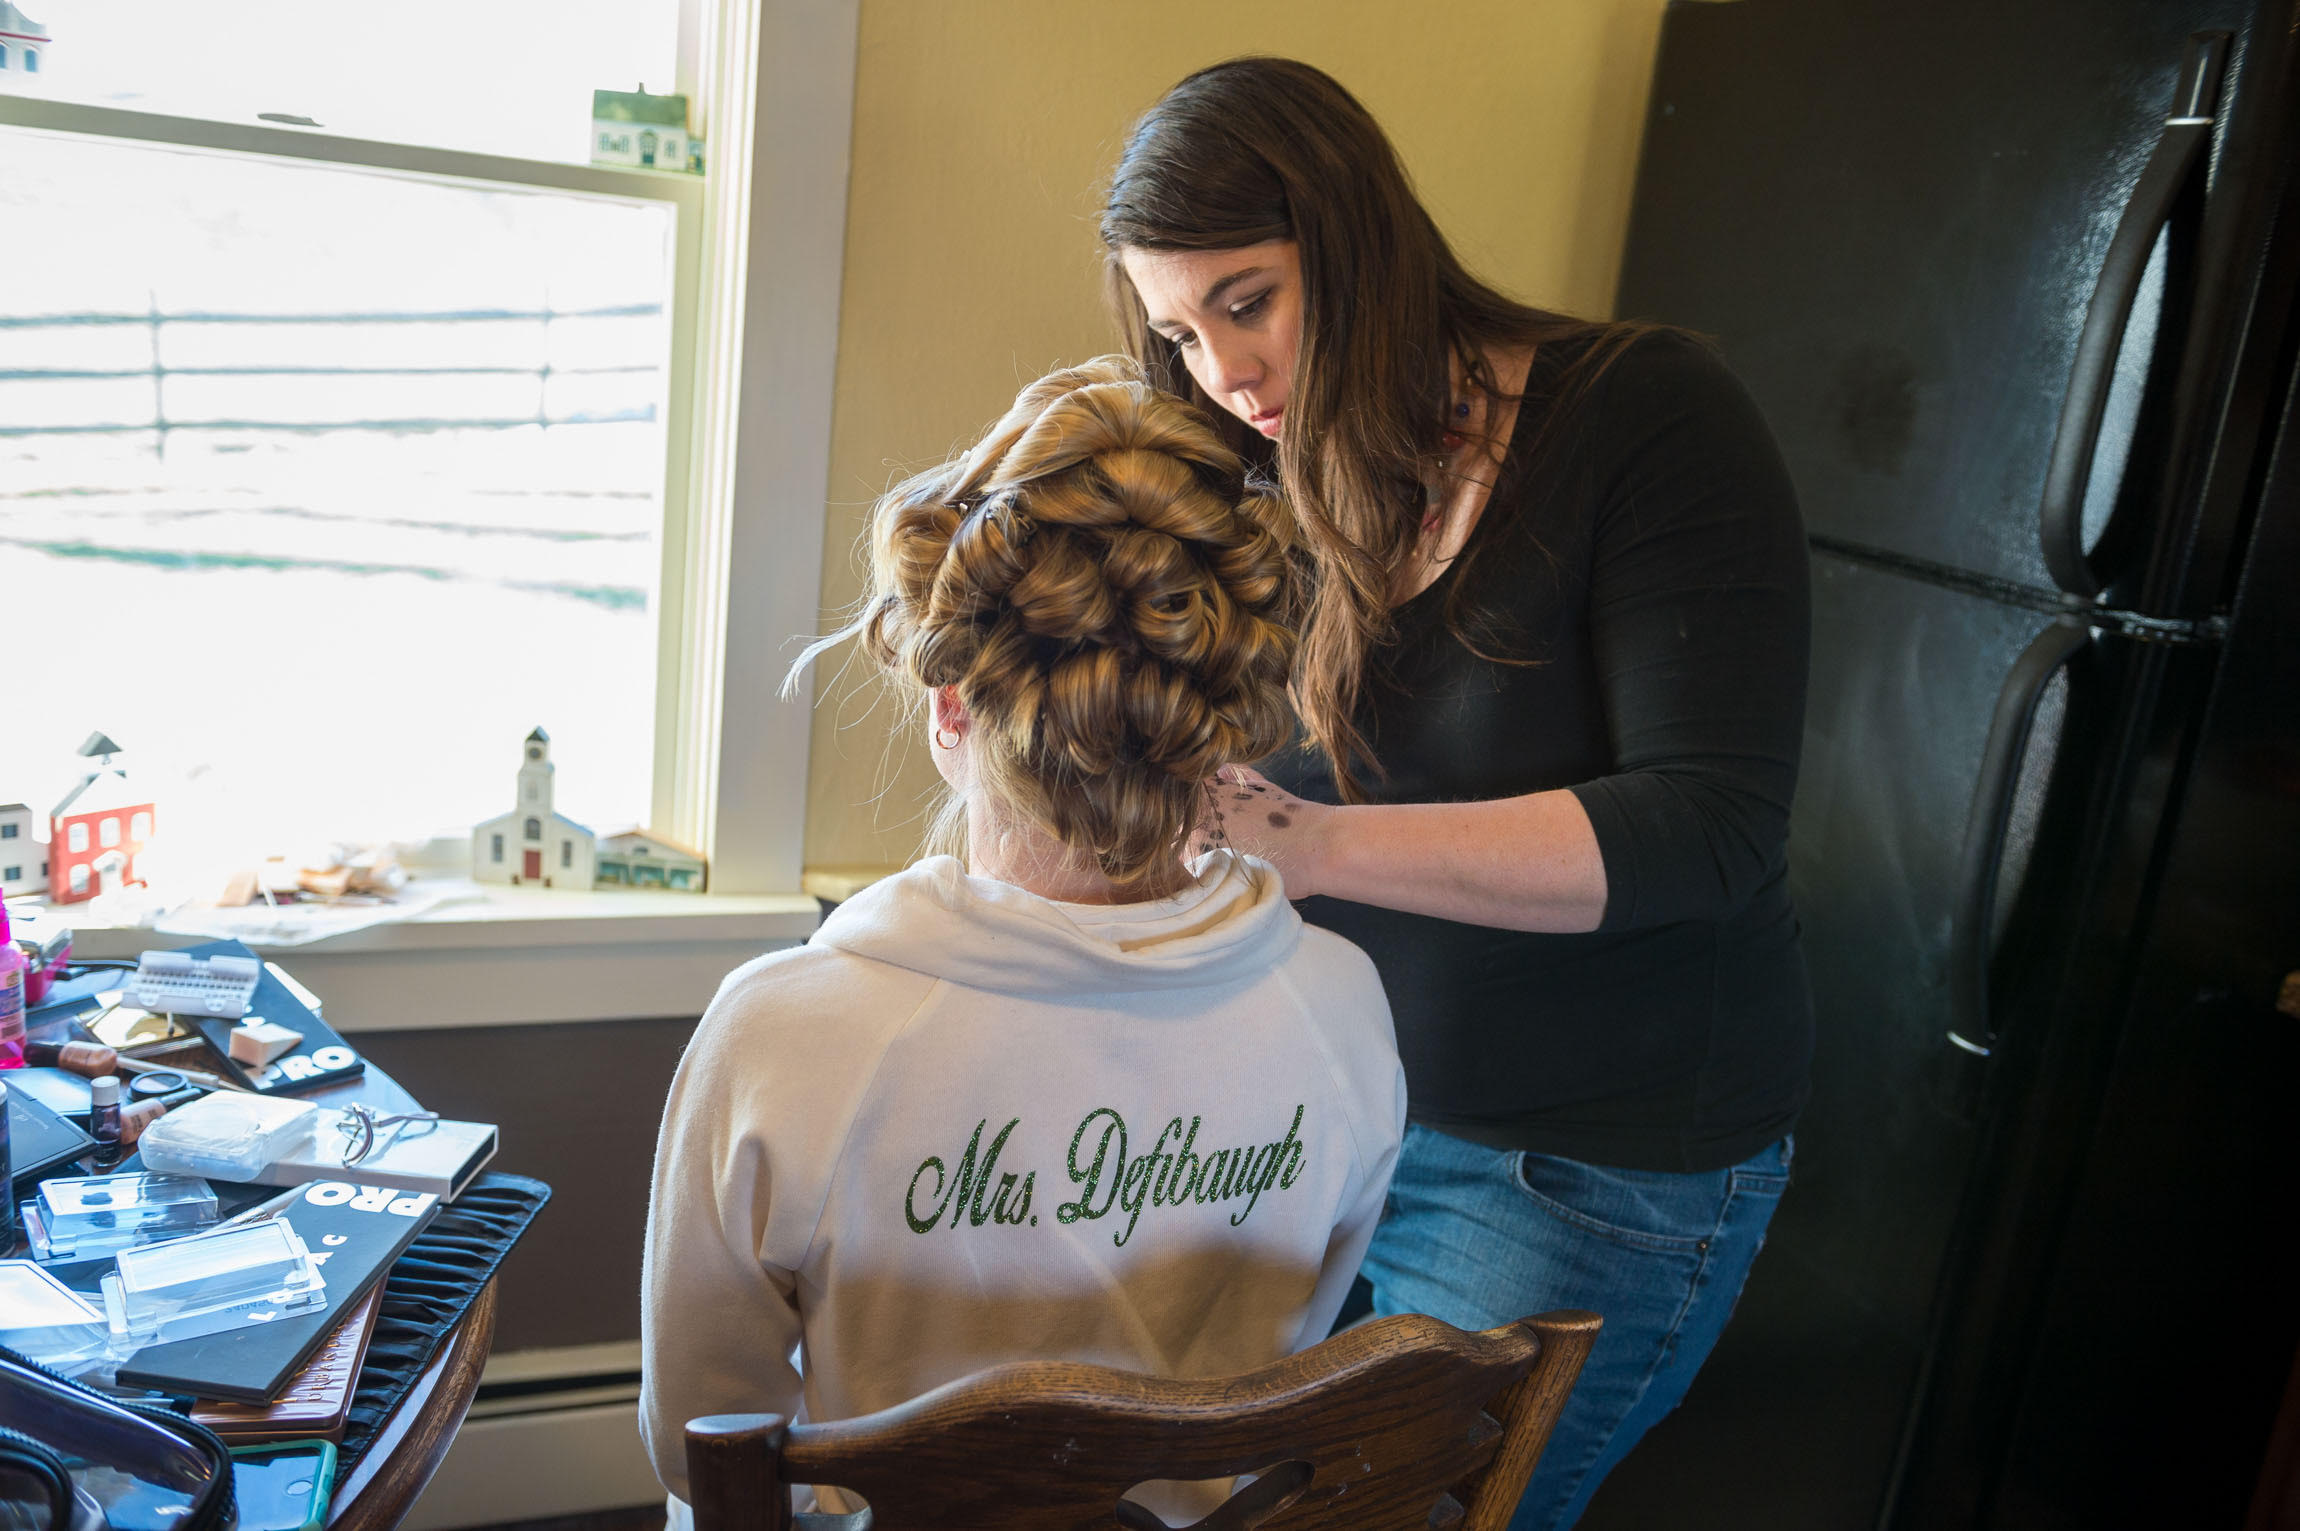 Classic hair styling and makeup for a Pittsburgh bride-to-be and her bridal party